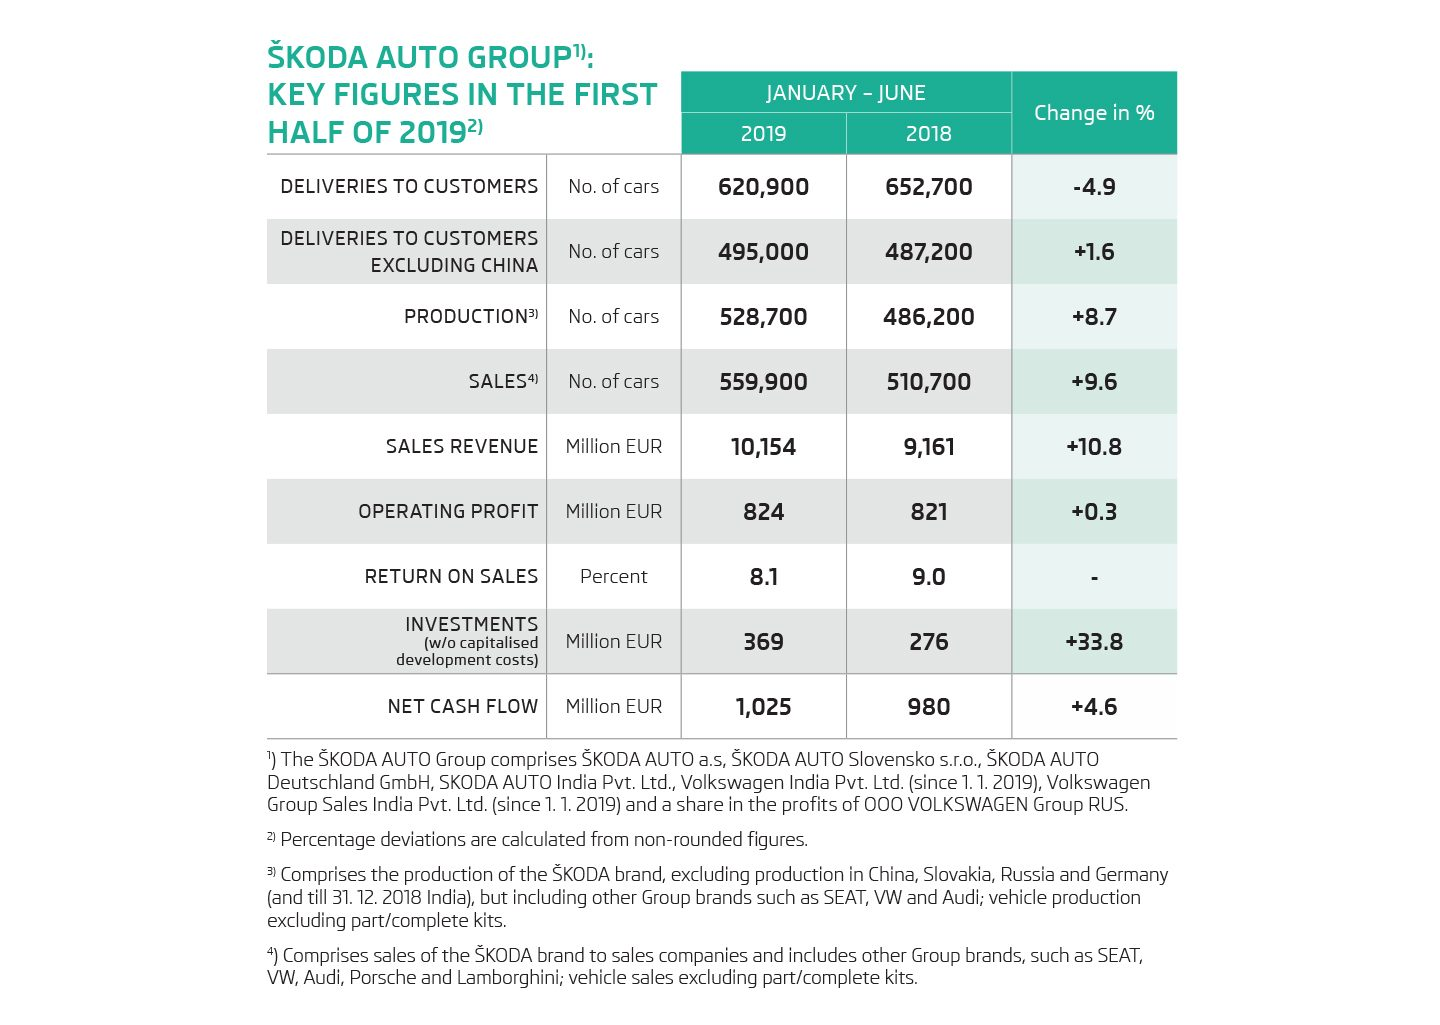 ŠKODA AUTO increases operating profit and sales revenue in first half of 2019